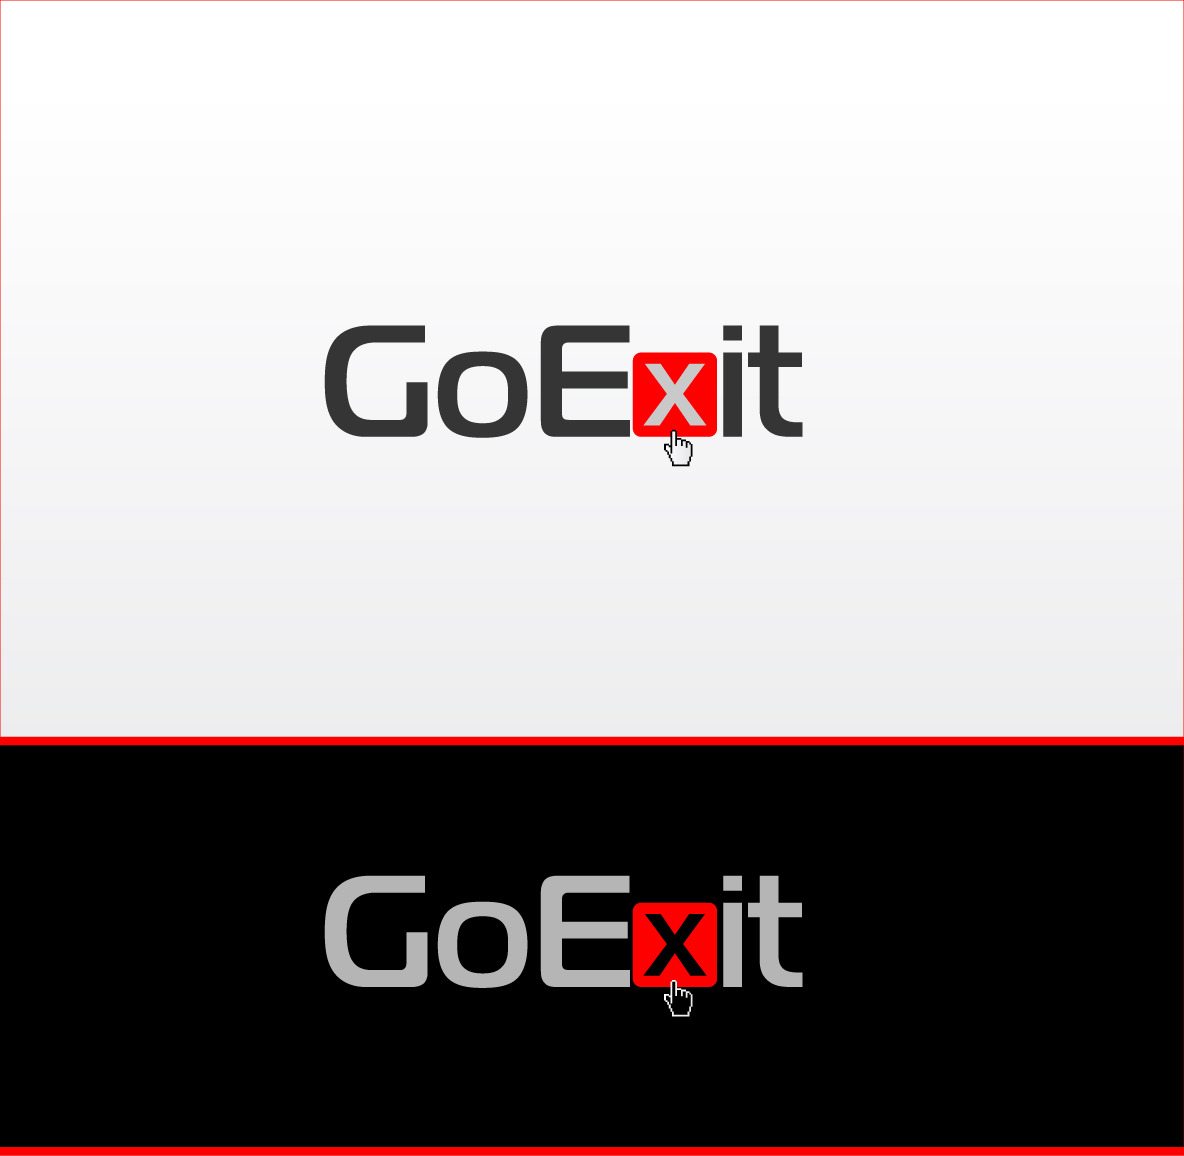 Logo Design by zoiDesign - Entry No. 26 in the Logo Design Contest GoExit Logo Design.